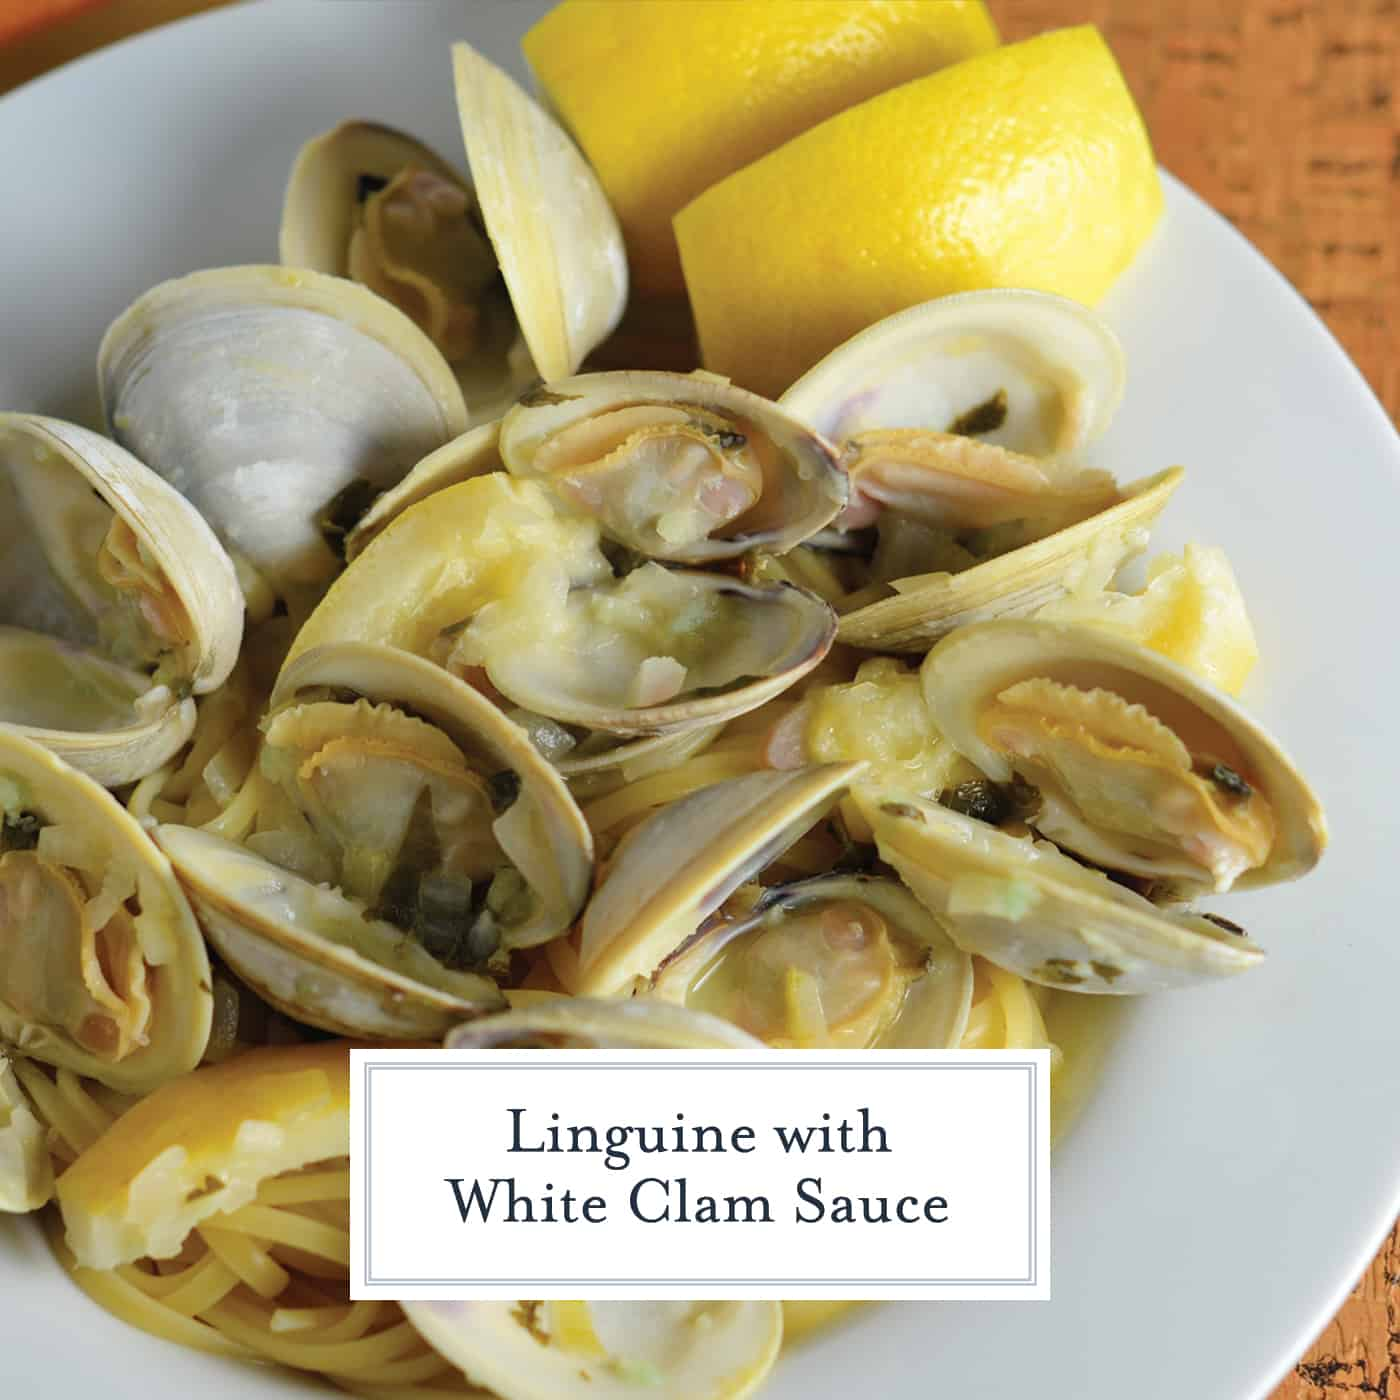 Linguine with White Clam Sauce, just like at the restaurant. Buttery broth, chopped and whole clams in an easy shallot, garlic and parsley sauce. #seafoodpastarecipe #easyseafoodrecipes www.savoryexperiments.com